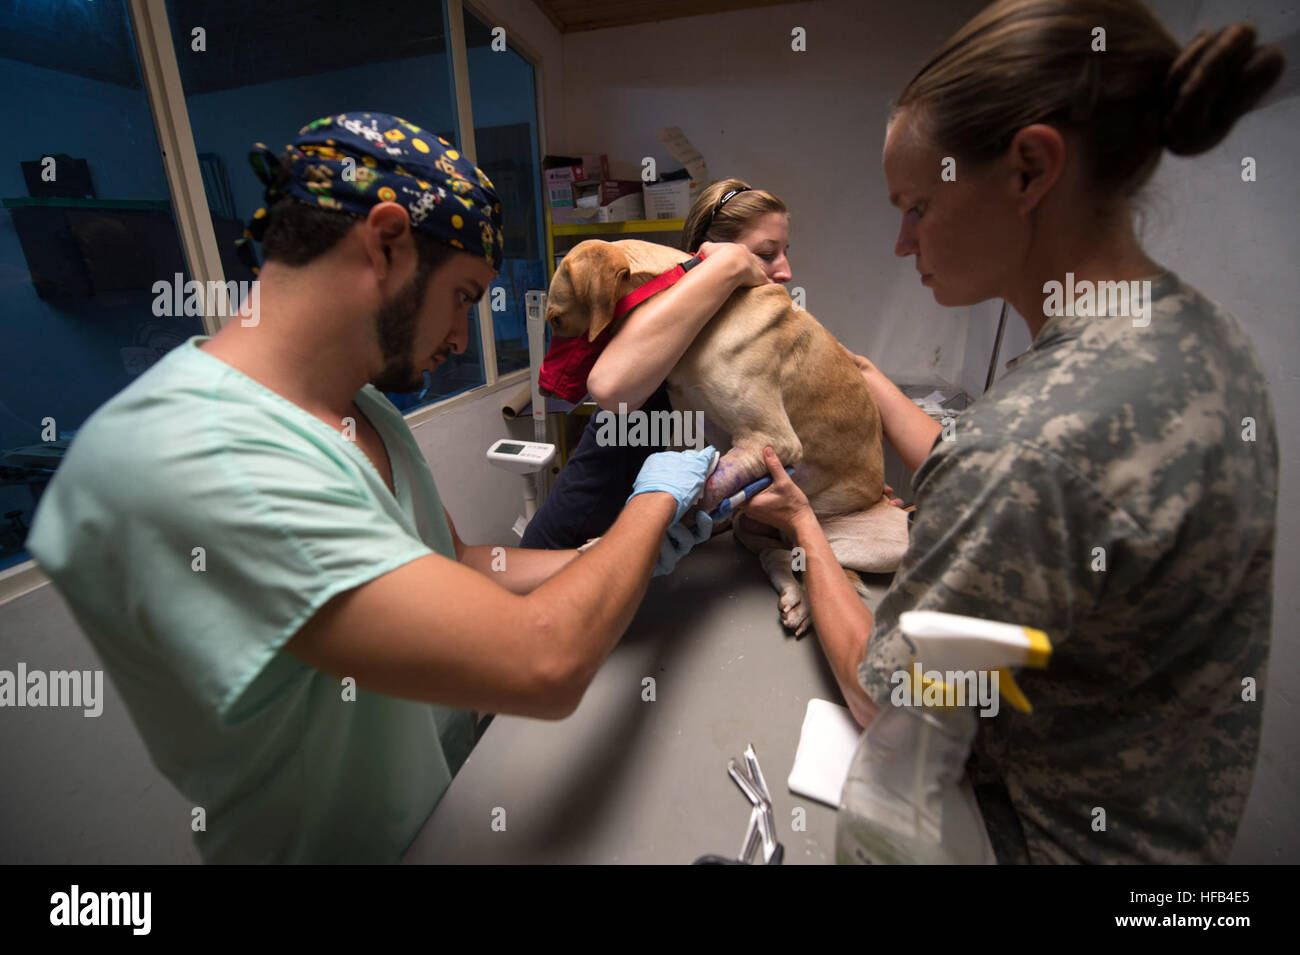 150715-N-XQ474-125 BUENAVENTURA, Colombia (July 15, 2015) -A local veterinarian, left, works with a volunteer with - Stock Image